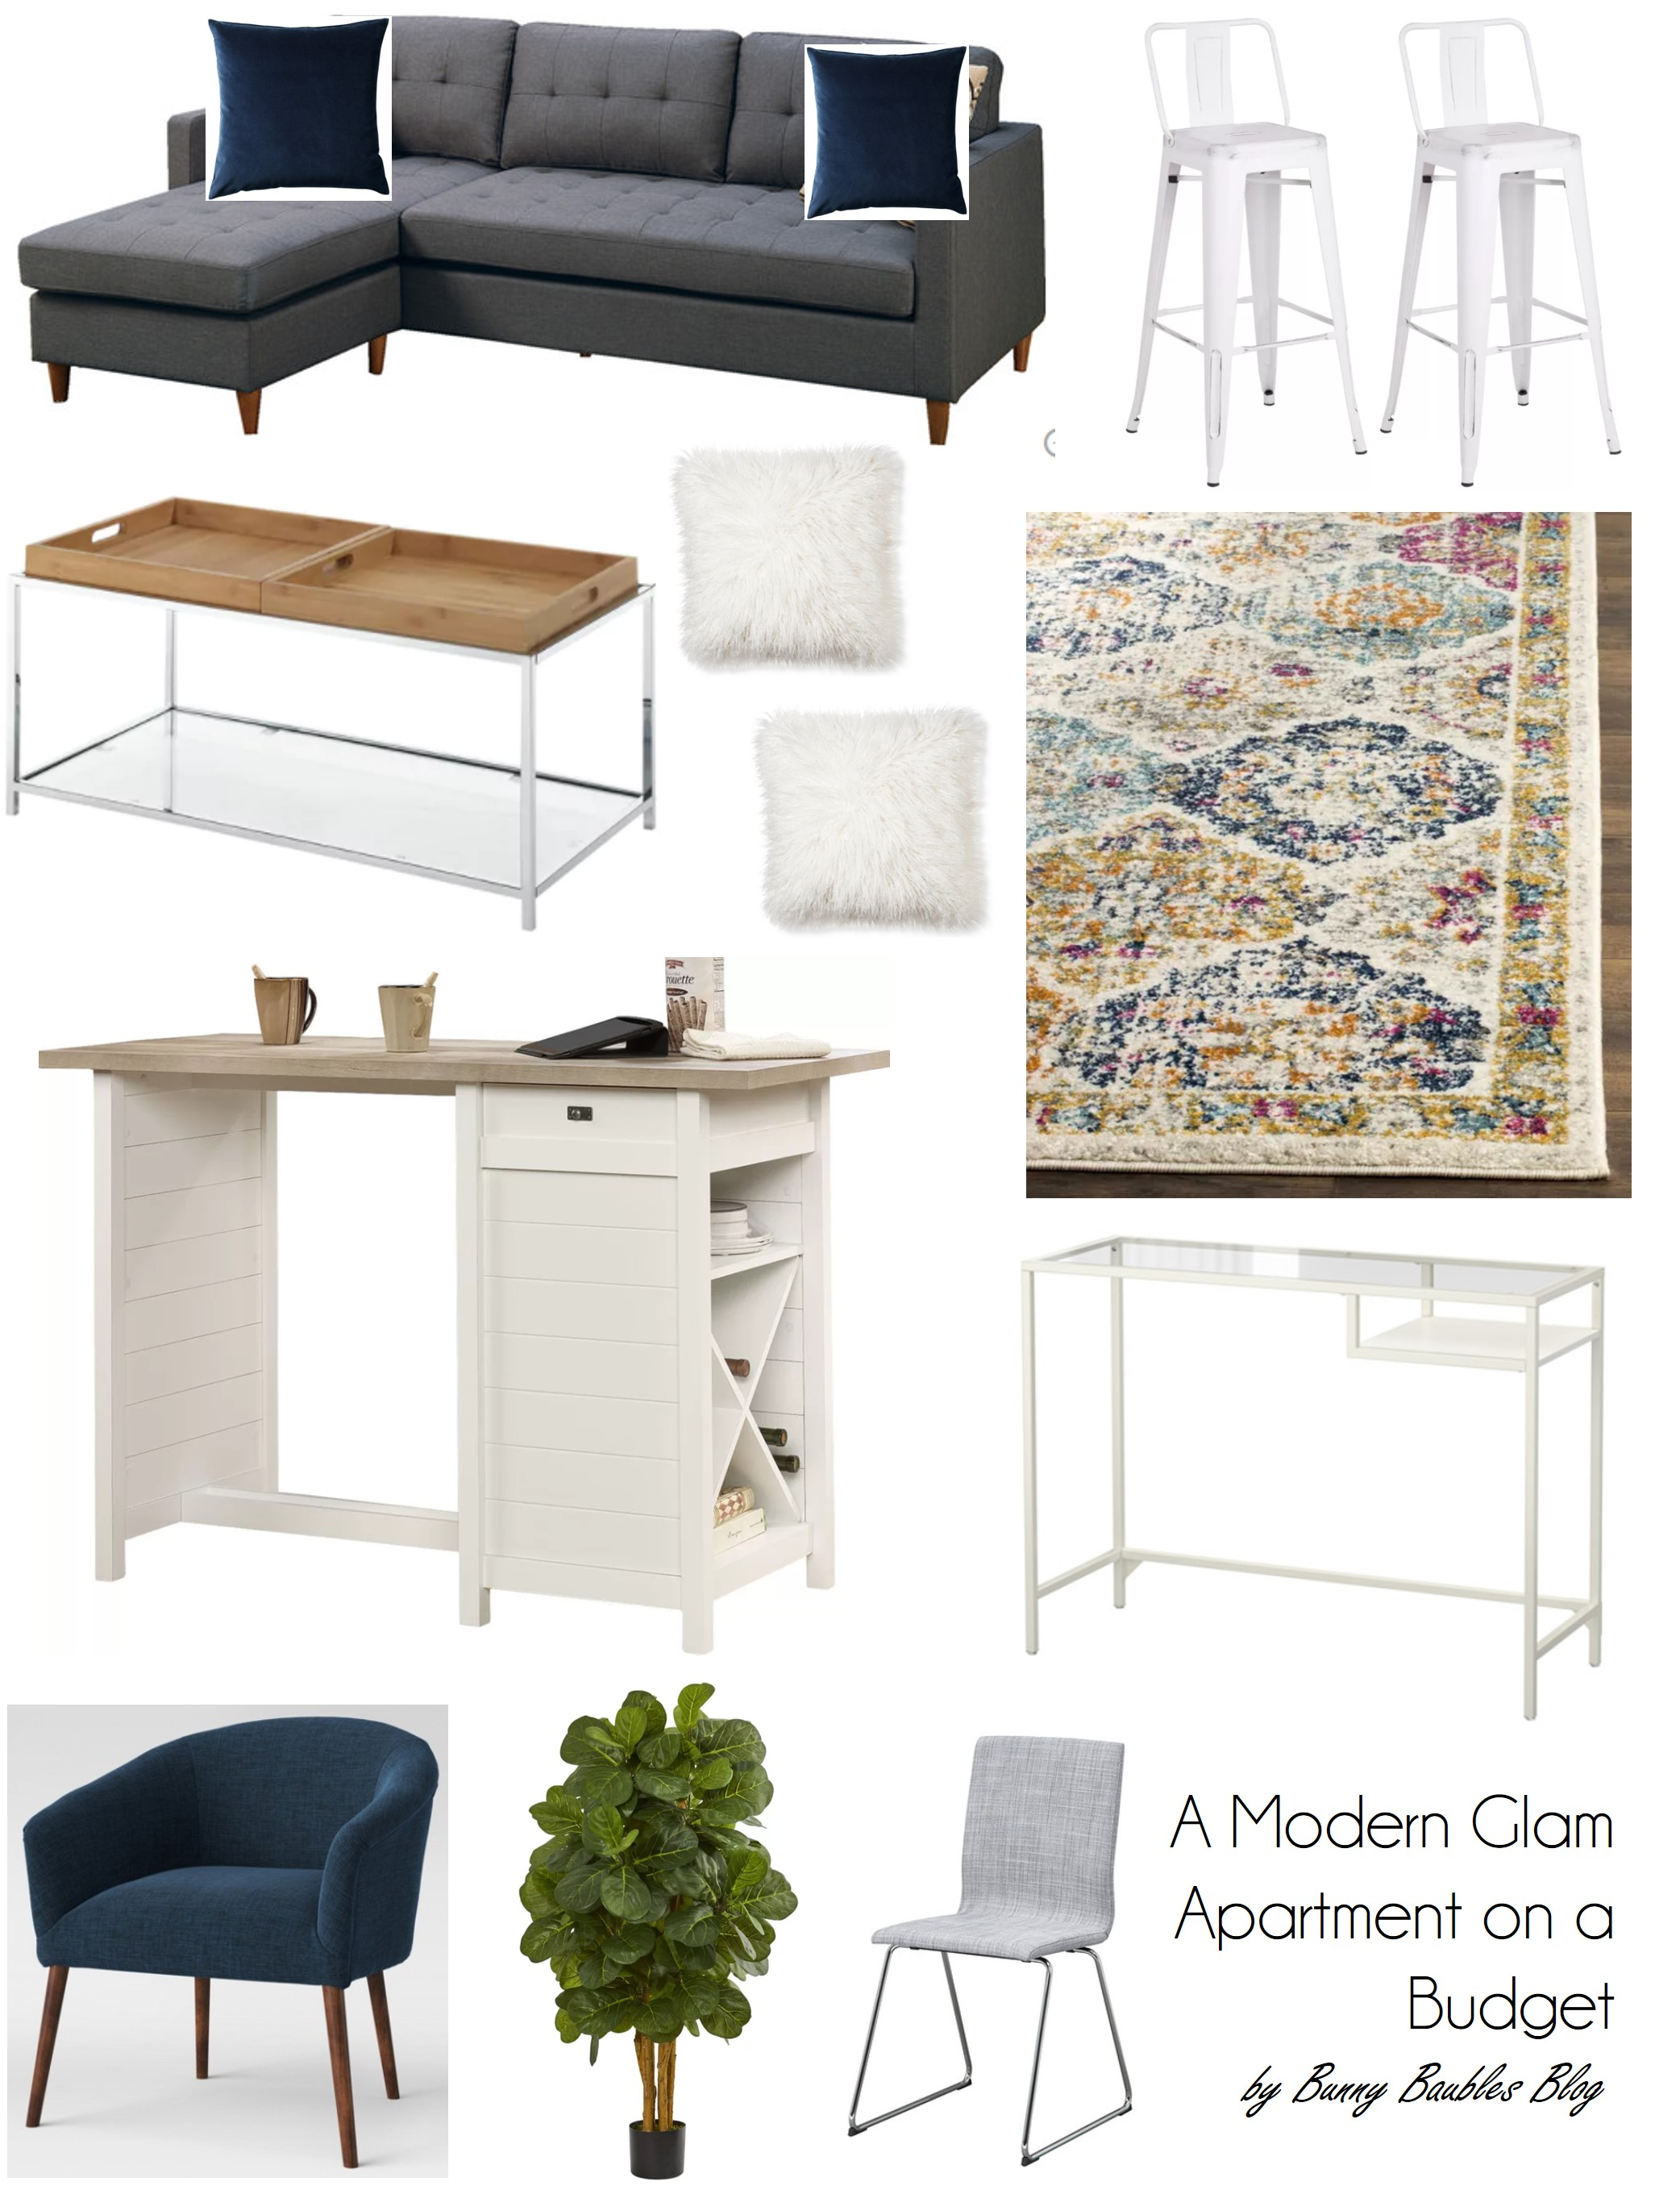 A Modern Glam Apartment on a Bud – Bunny Baubles